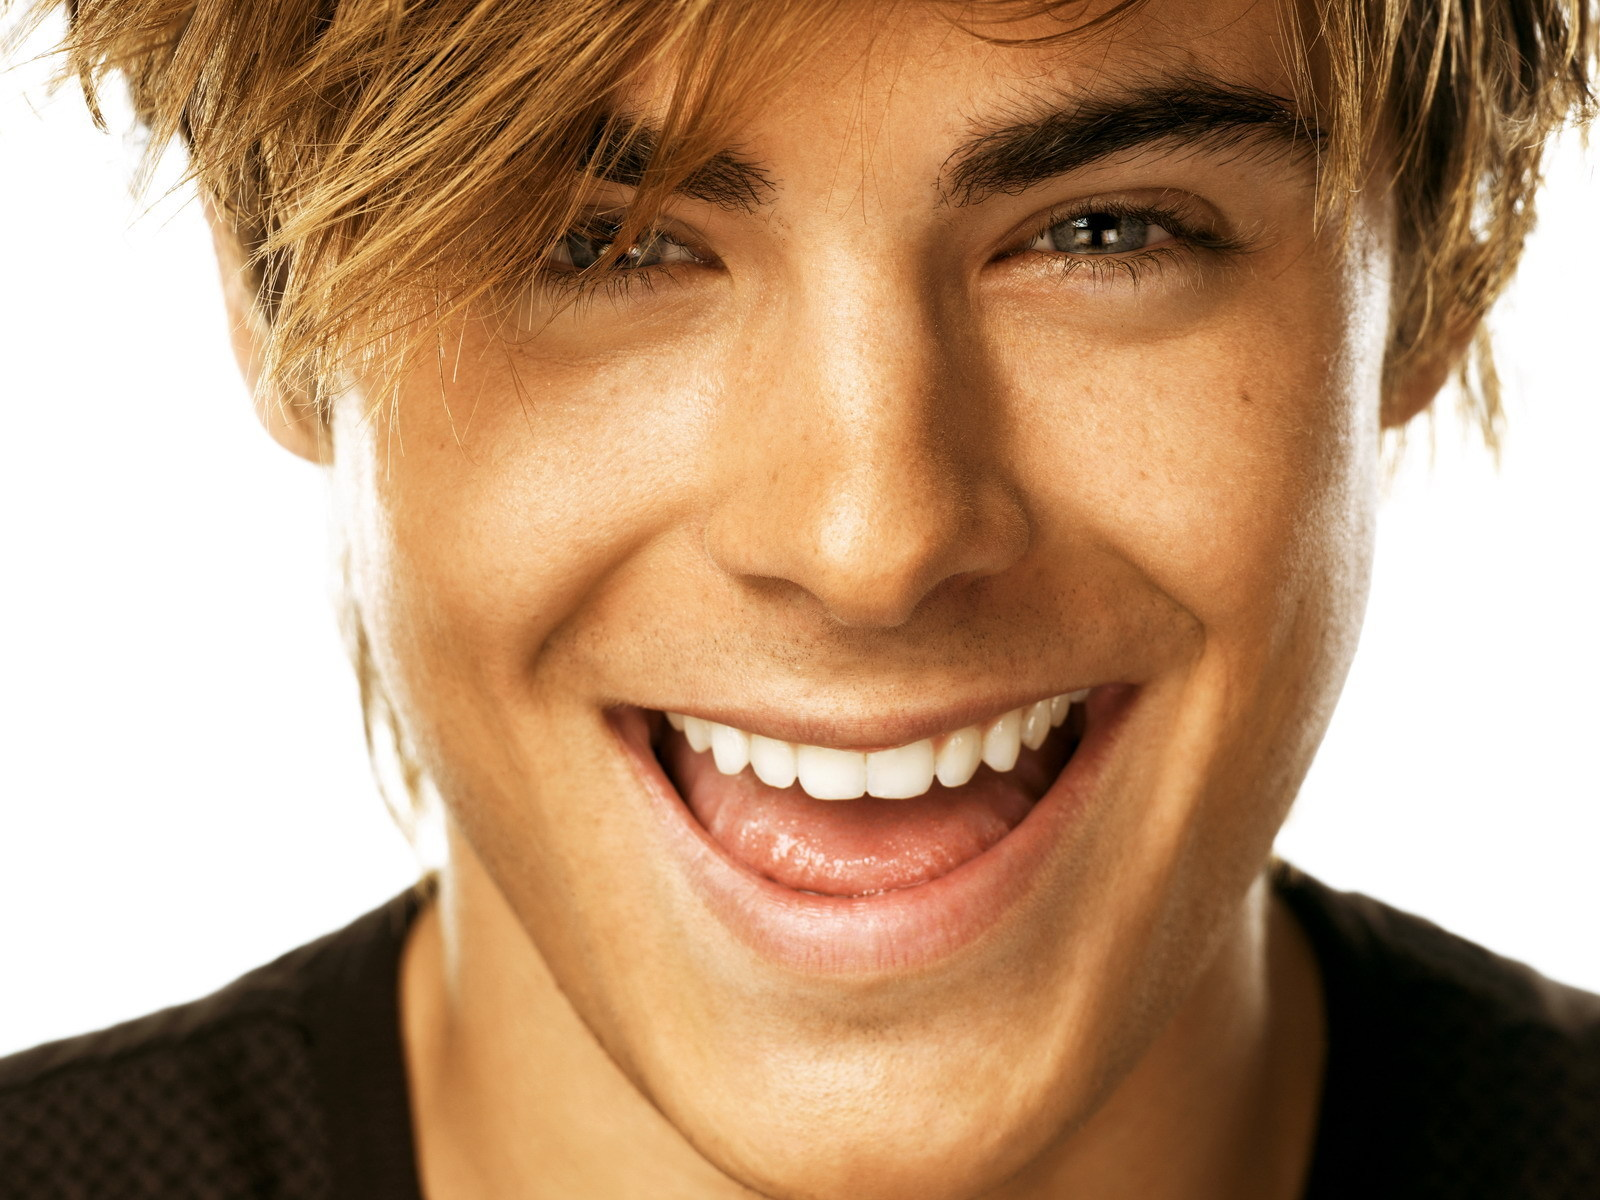 zac efron wallpaper smile